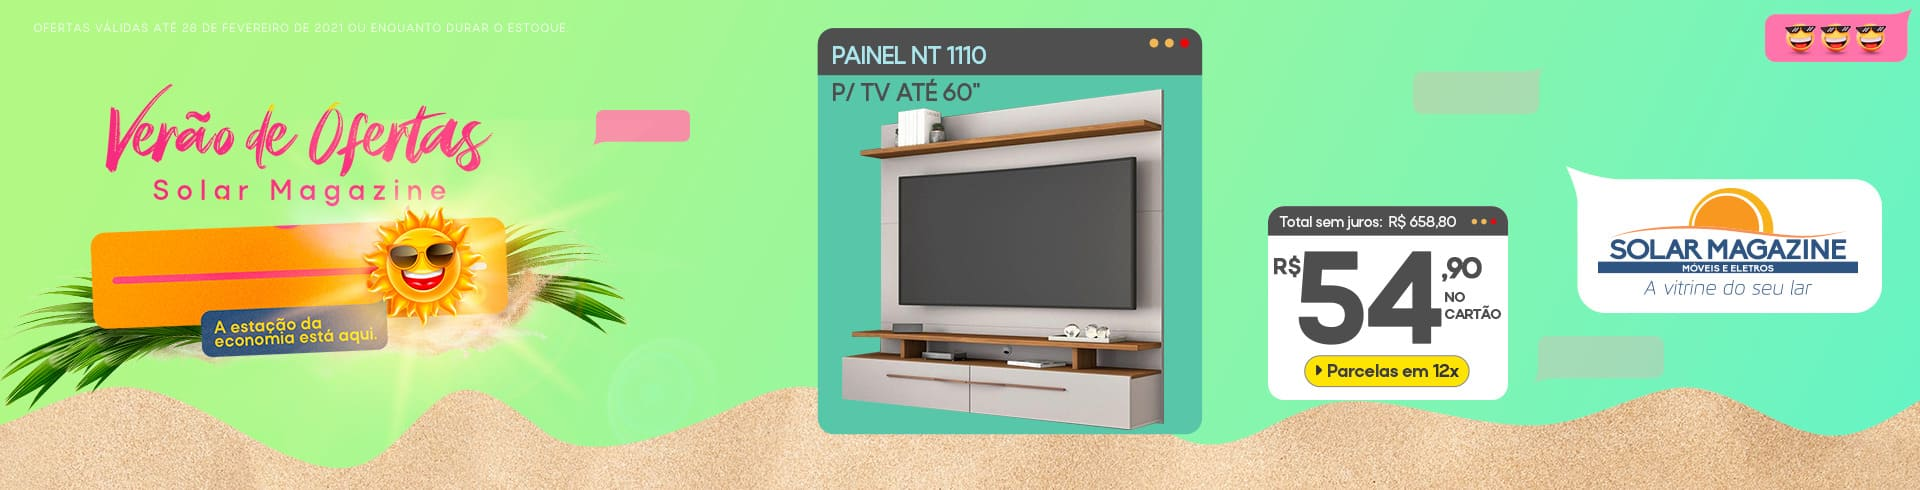 Painel NT1110 Notavel 1 a 15/02